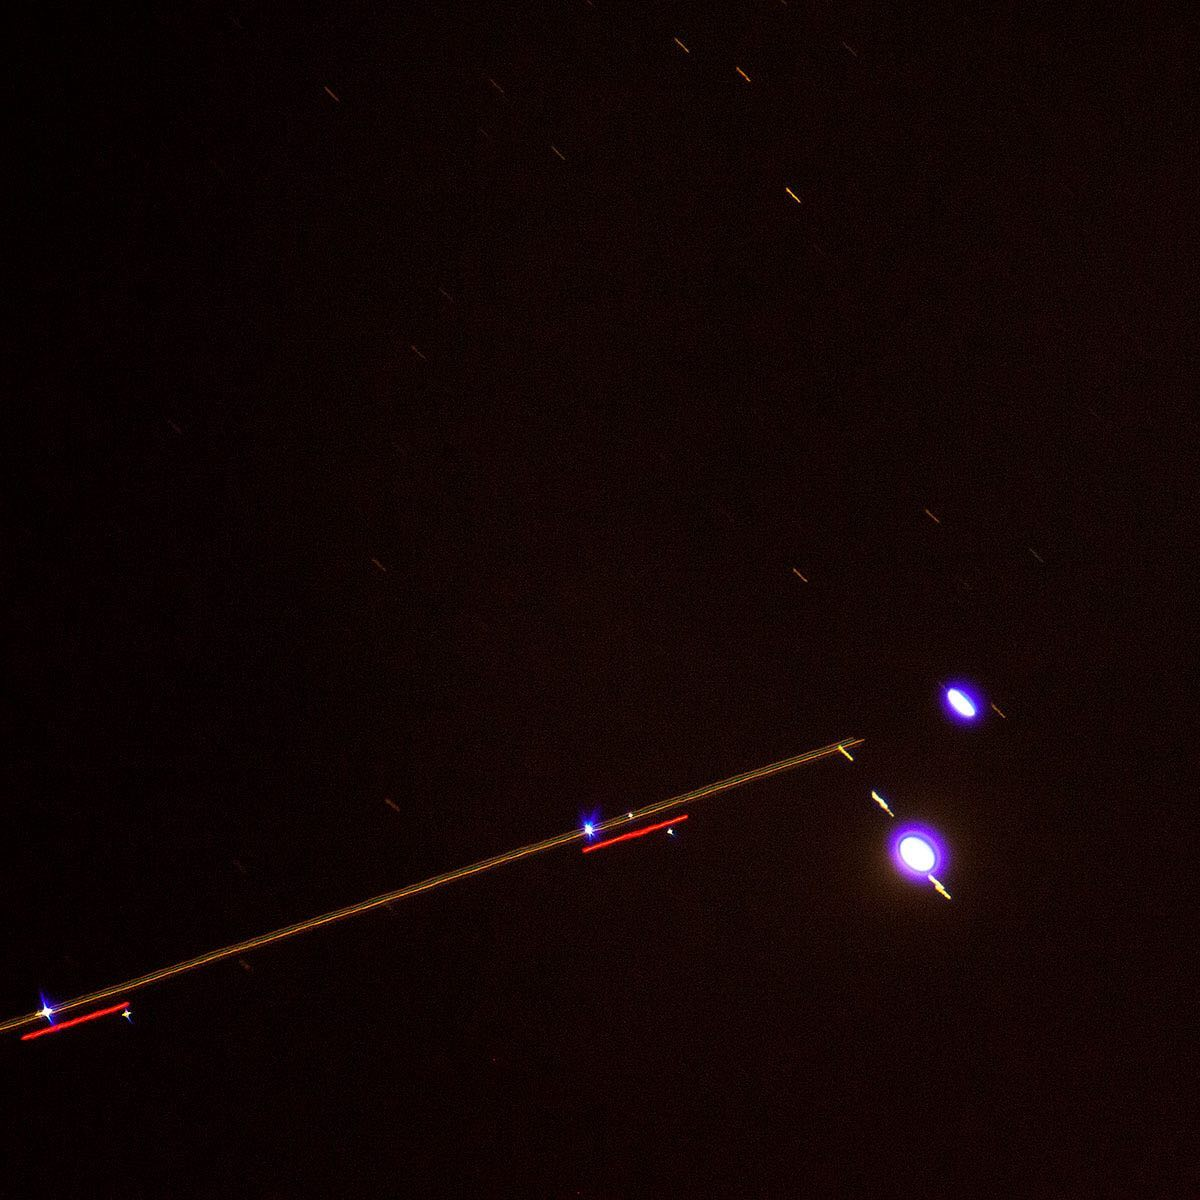 Another shot of the Great Conjunction from last night — a plane decided to show up :)